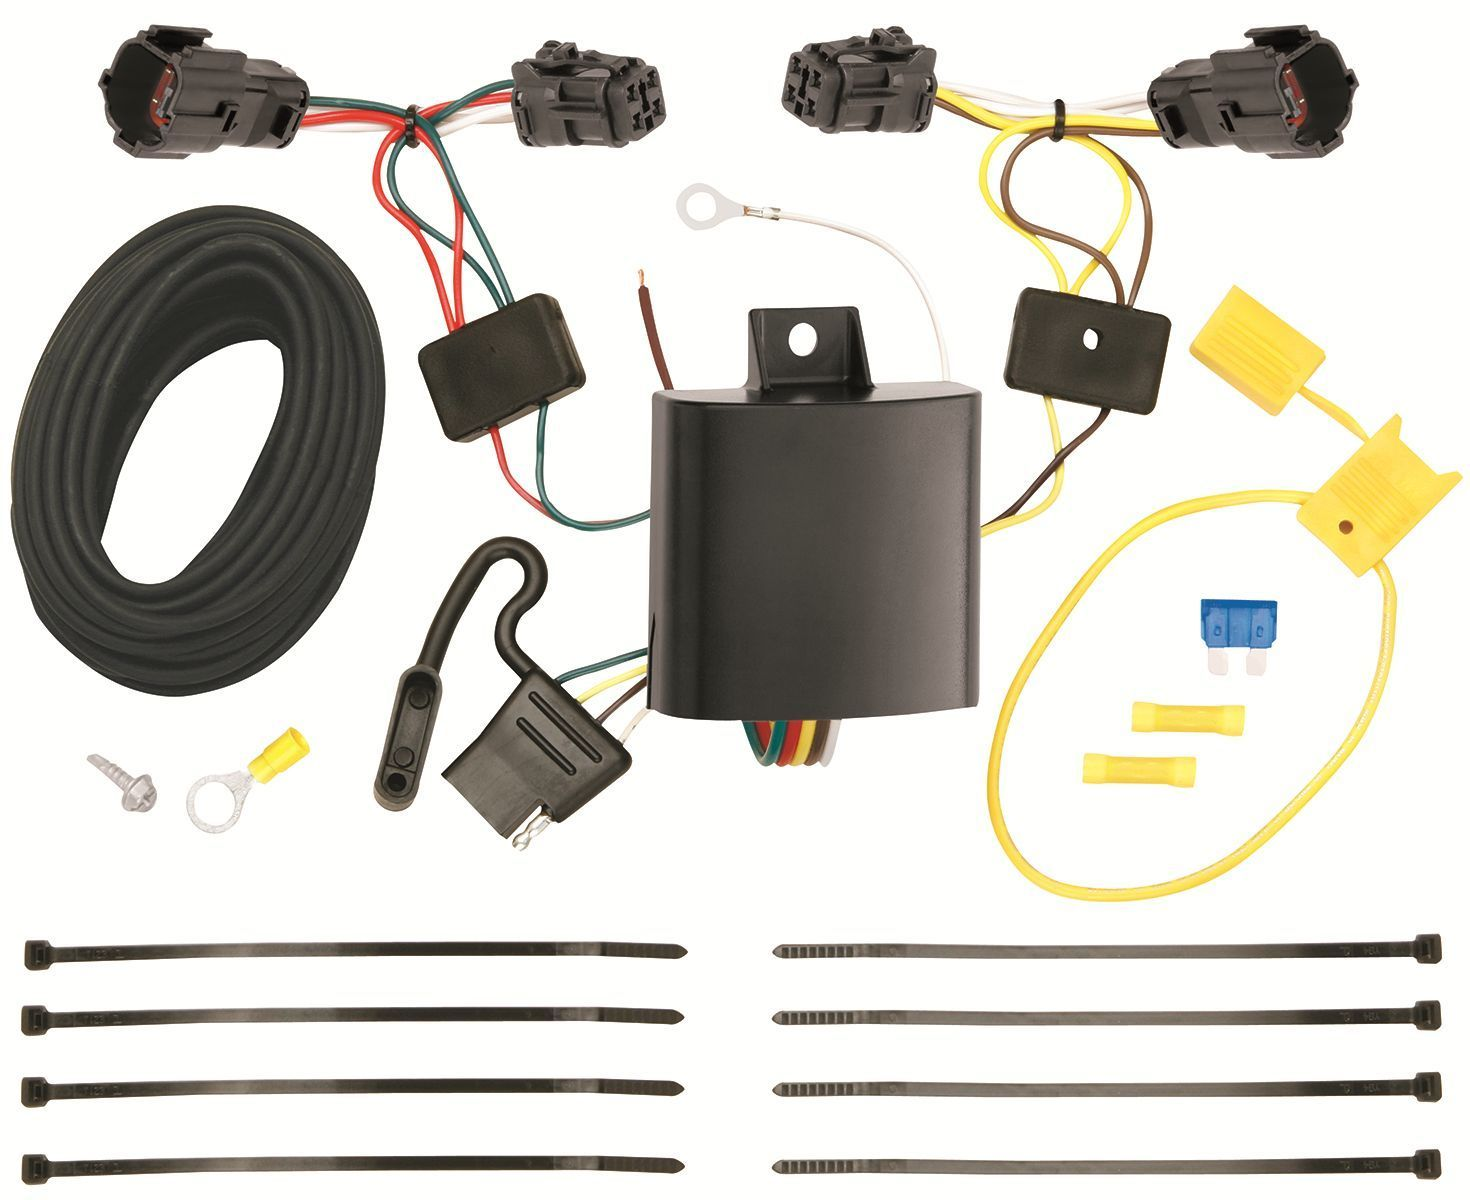 Trailer hitch wiring kit fits  kia sorento